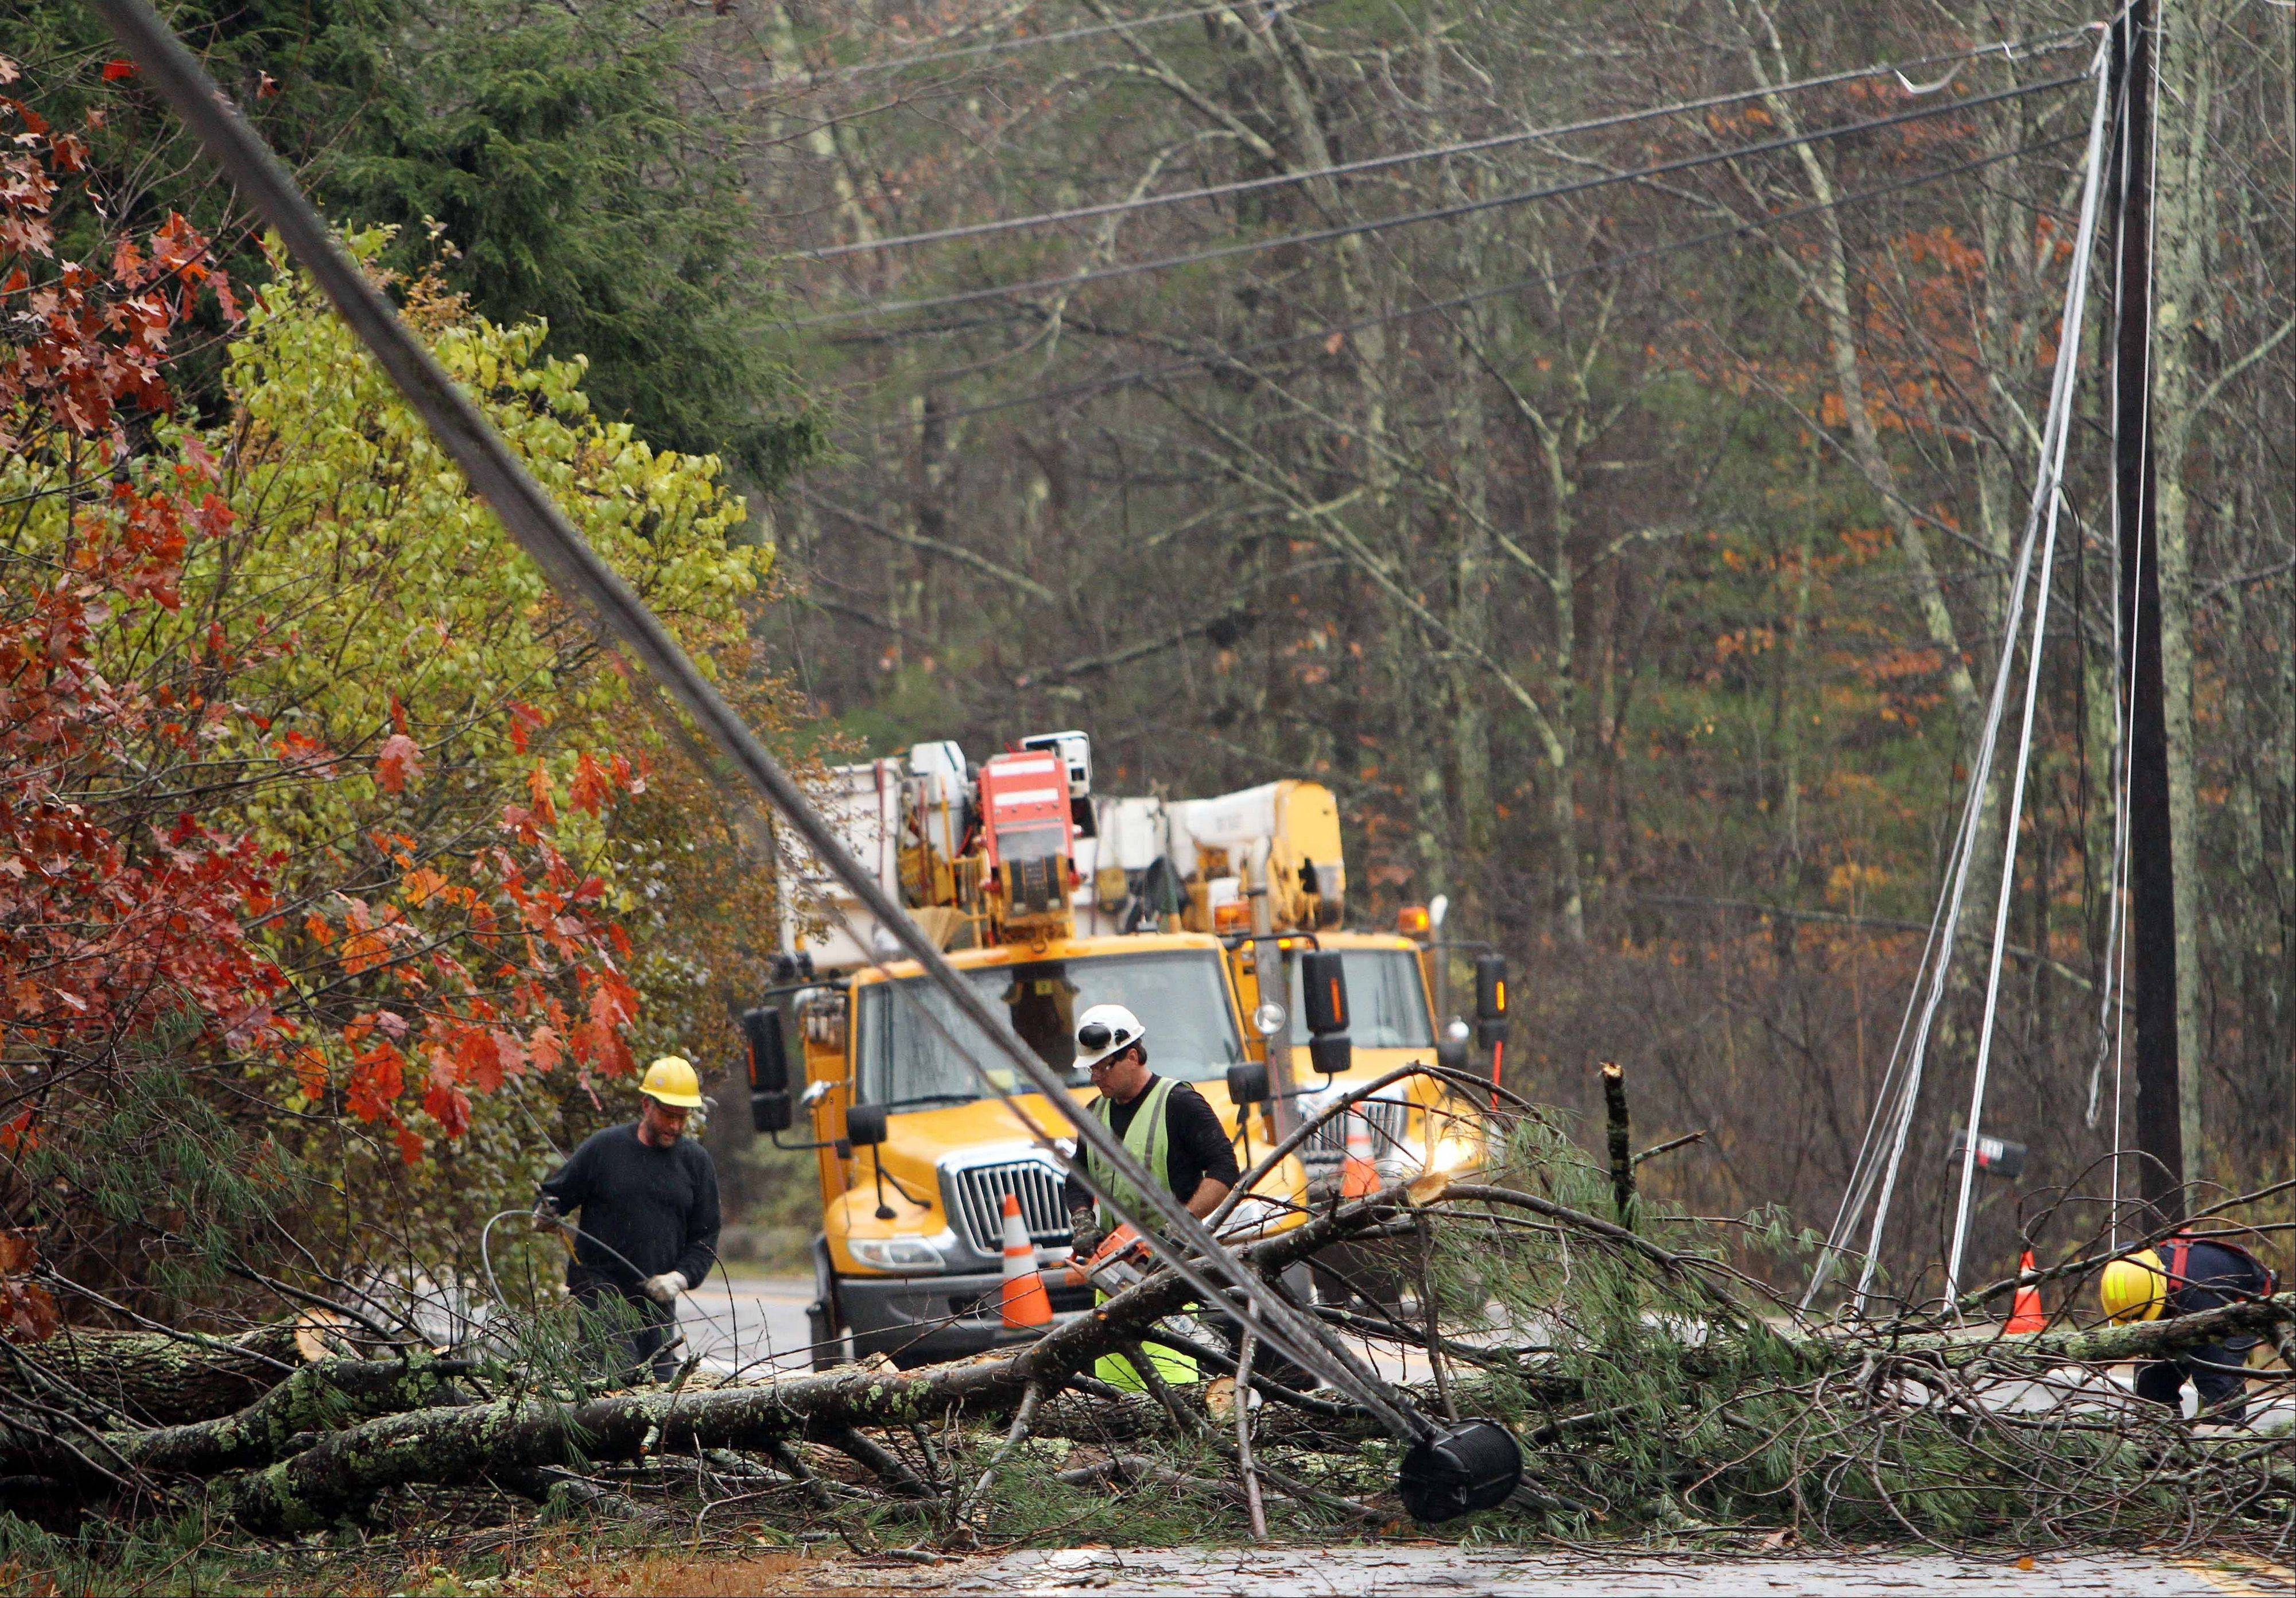 Crews work to clean up downed power lines in the aftermath of superstorm Sandy, Tuesday, Oct. 30, 2012 in Milton, N.H. Thousands of New Hampshire residents and businesses were without power.